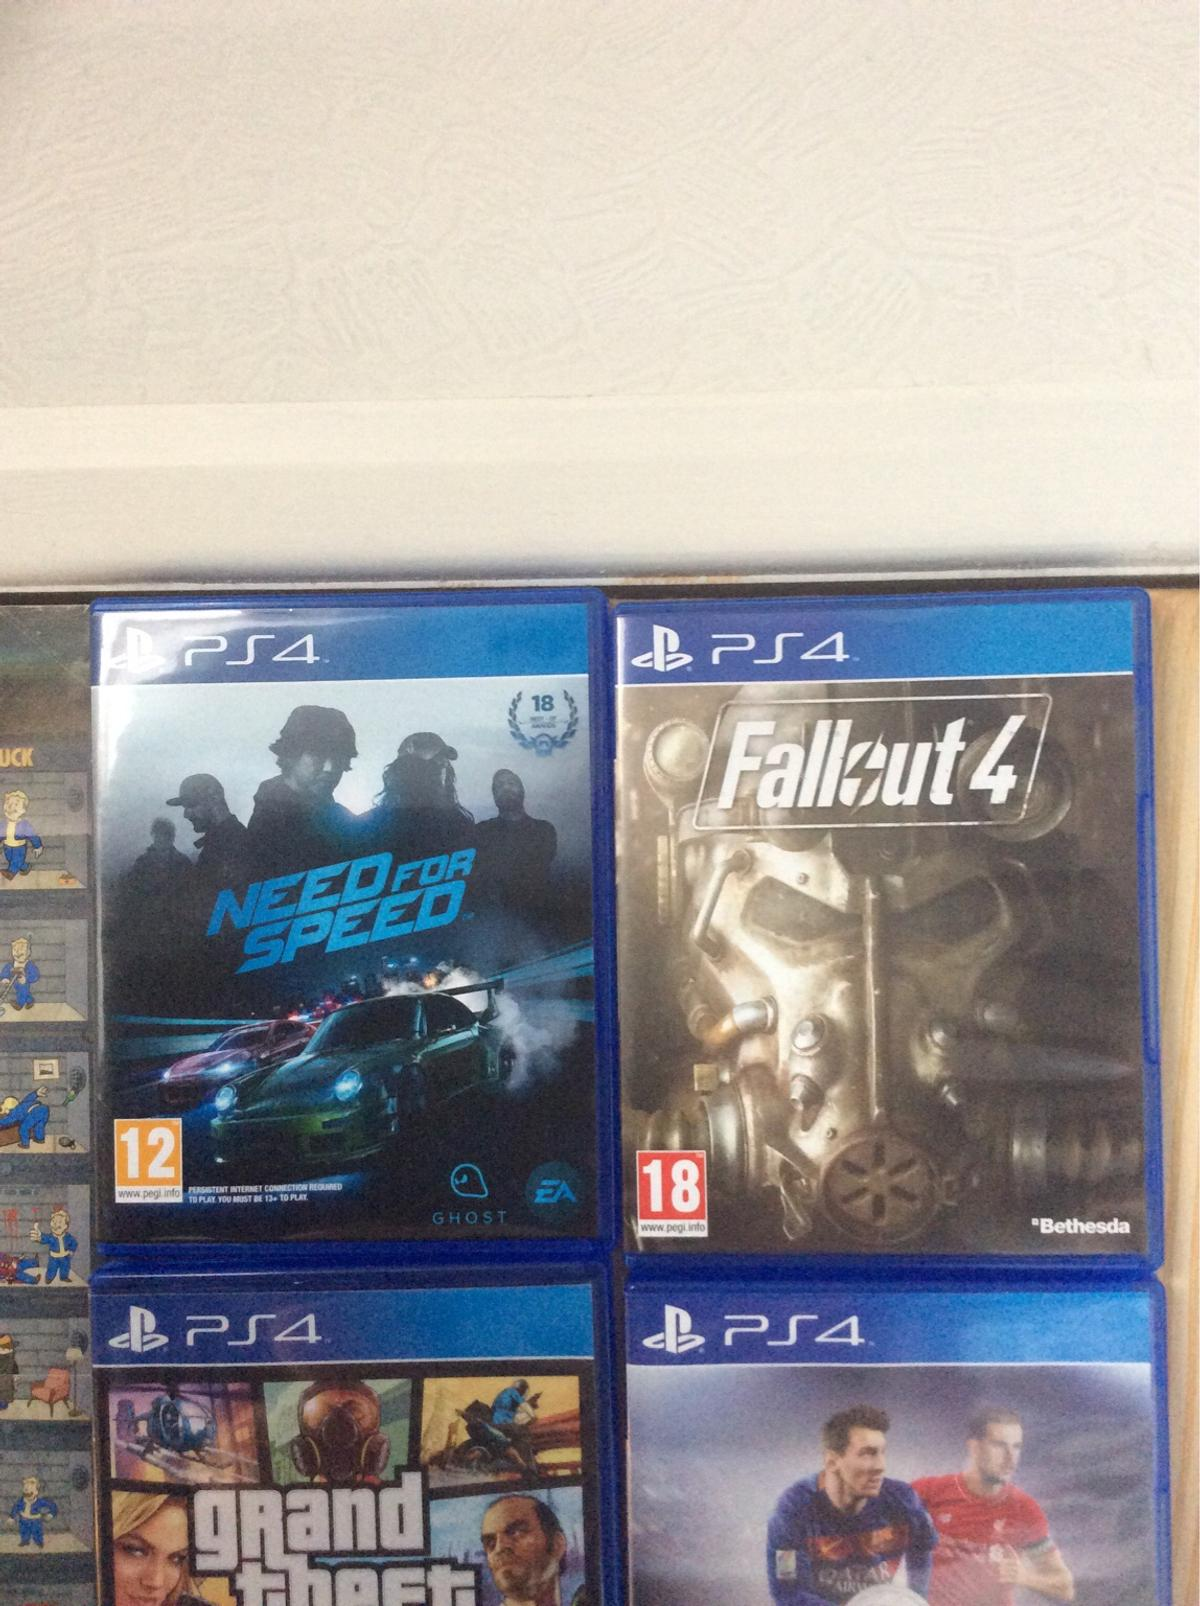 Fallout 4 and need for speed 2015 ps4